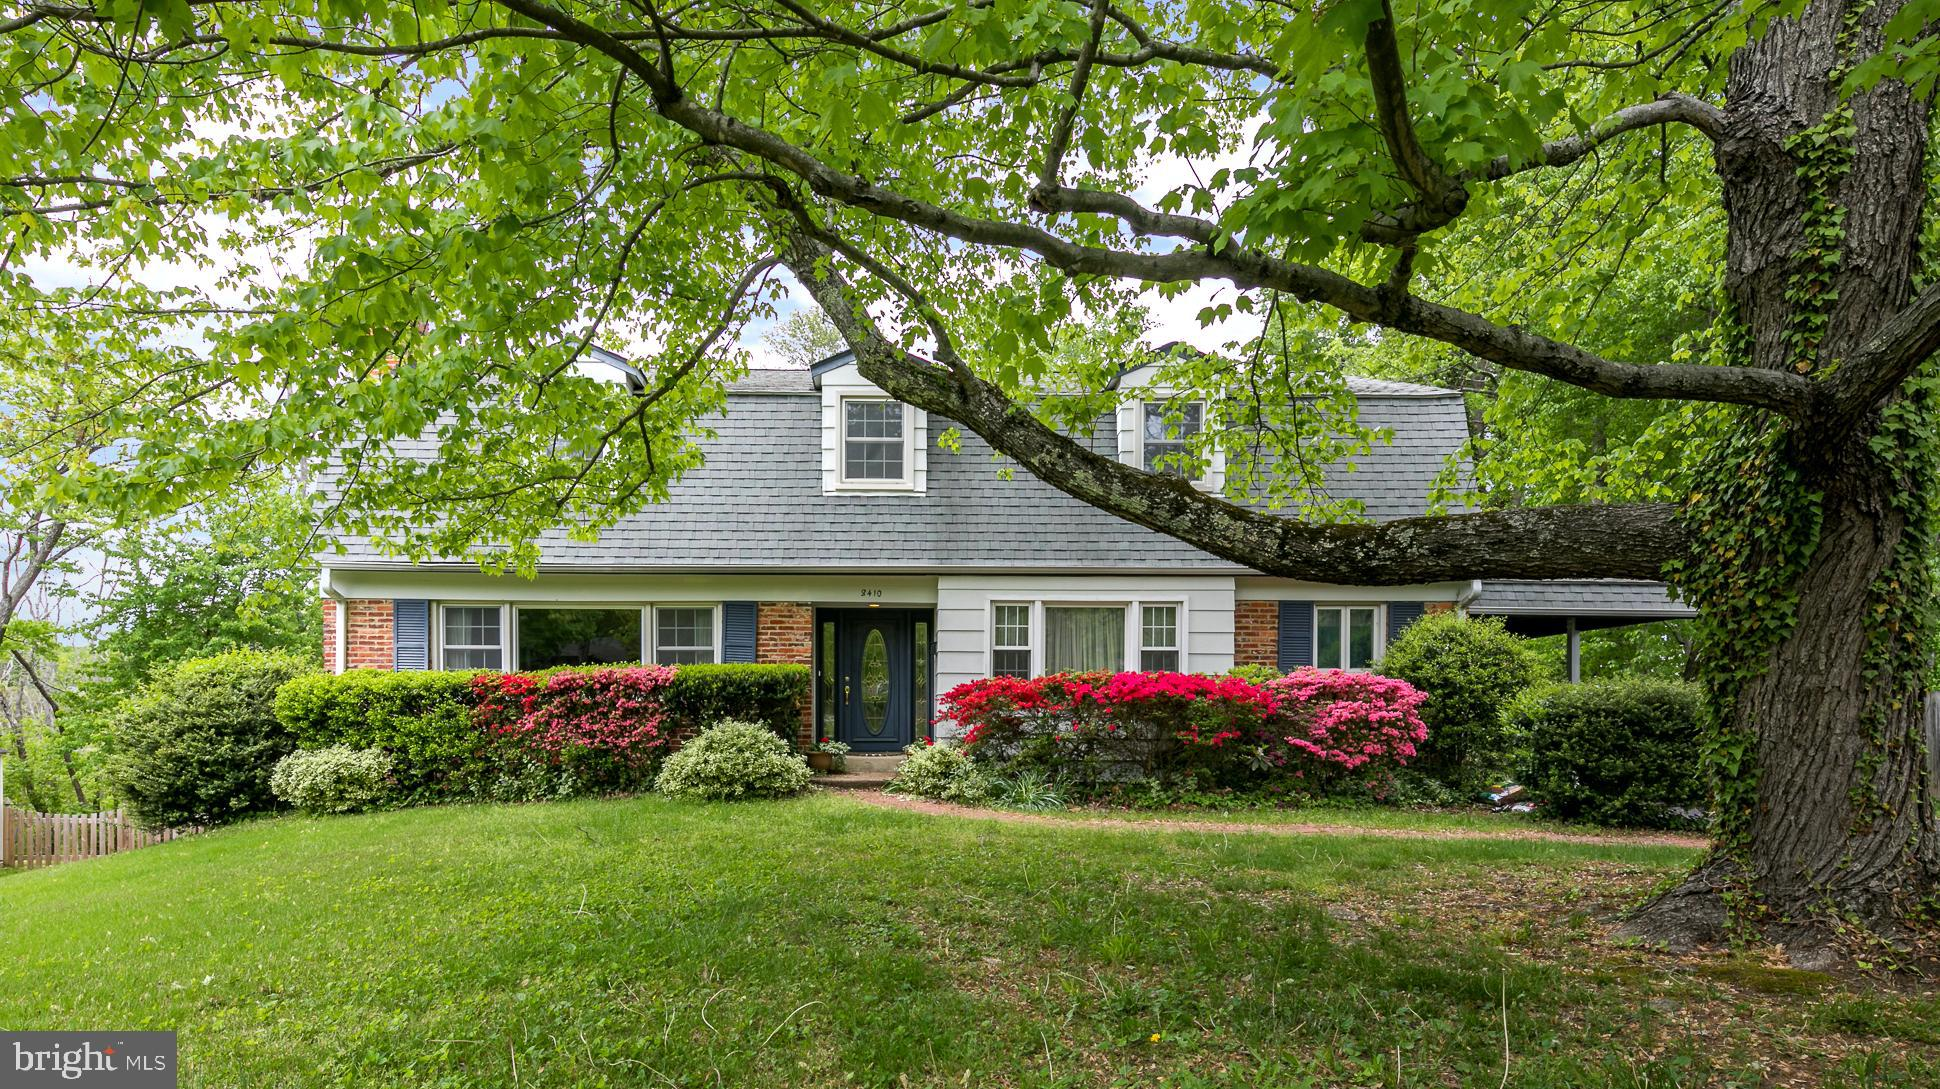 Don't miss your chance to see this beautiful waterfront home on Little Hunting Creek before it's gone!  With a large, light filled floor plan great for entertaining it surely won't last long.  The home features a lovely addition including a family room, eating area, and separate laundry room/pantry with so much extra storage.  Walk out from the addition to the full length deck that has sweeping views of the water! The kitchen leads you to a separate formal dining room and even more living space.  For the avid chef this home boasts a gas range with a trivection oven. There is beautiful hardwood flooring throughout both the main and upper level living spaces.  Flowering trees, bushes and perennial blooms dazzle with new colors popping up in Spring, Summer, and Fall! The floor plan can easily be converted back to a 6 bedroom by anyone looking for a home with a main level master.  Cast a line from your own back yard, or hop in a canoe to enjoy a relaxing ride to watch the majestic great blue heron, osprey, and great egrets just outside your door. Easy access to everything including Old town Alexandria and DC from this amazing location.  Seller offering home warranty.